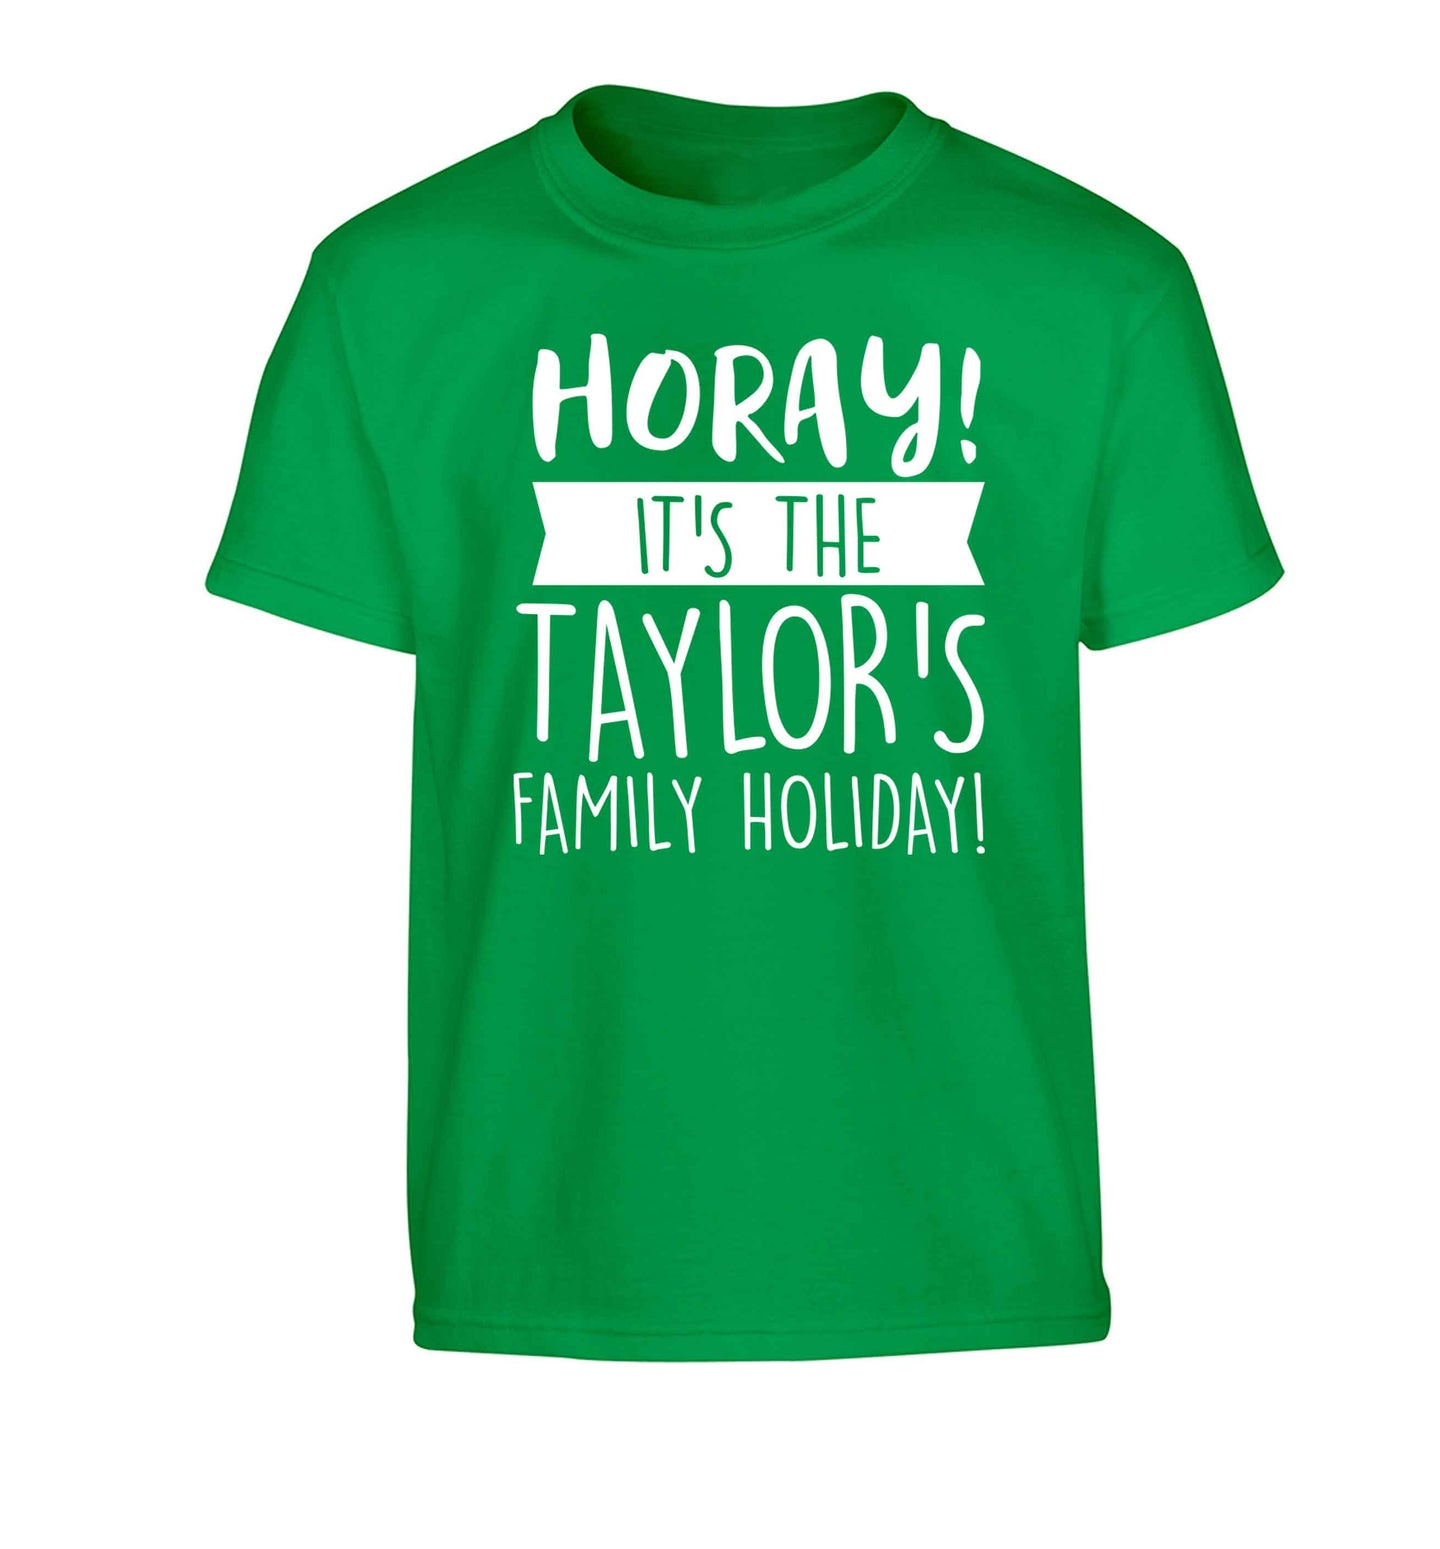 Horay it's the Taylor's family holiday! personalised item Children's green Tshirt 12-13 Years